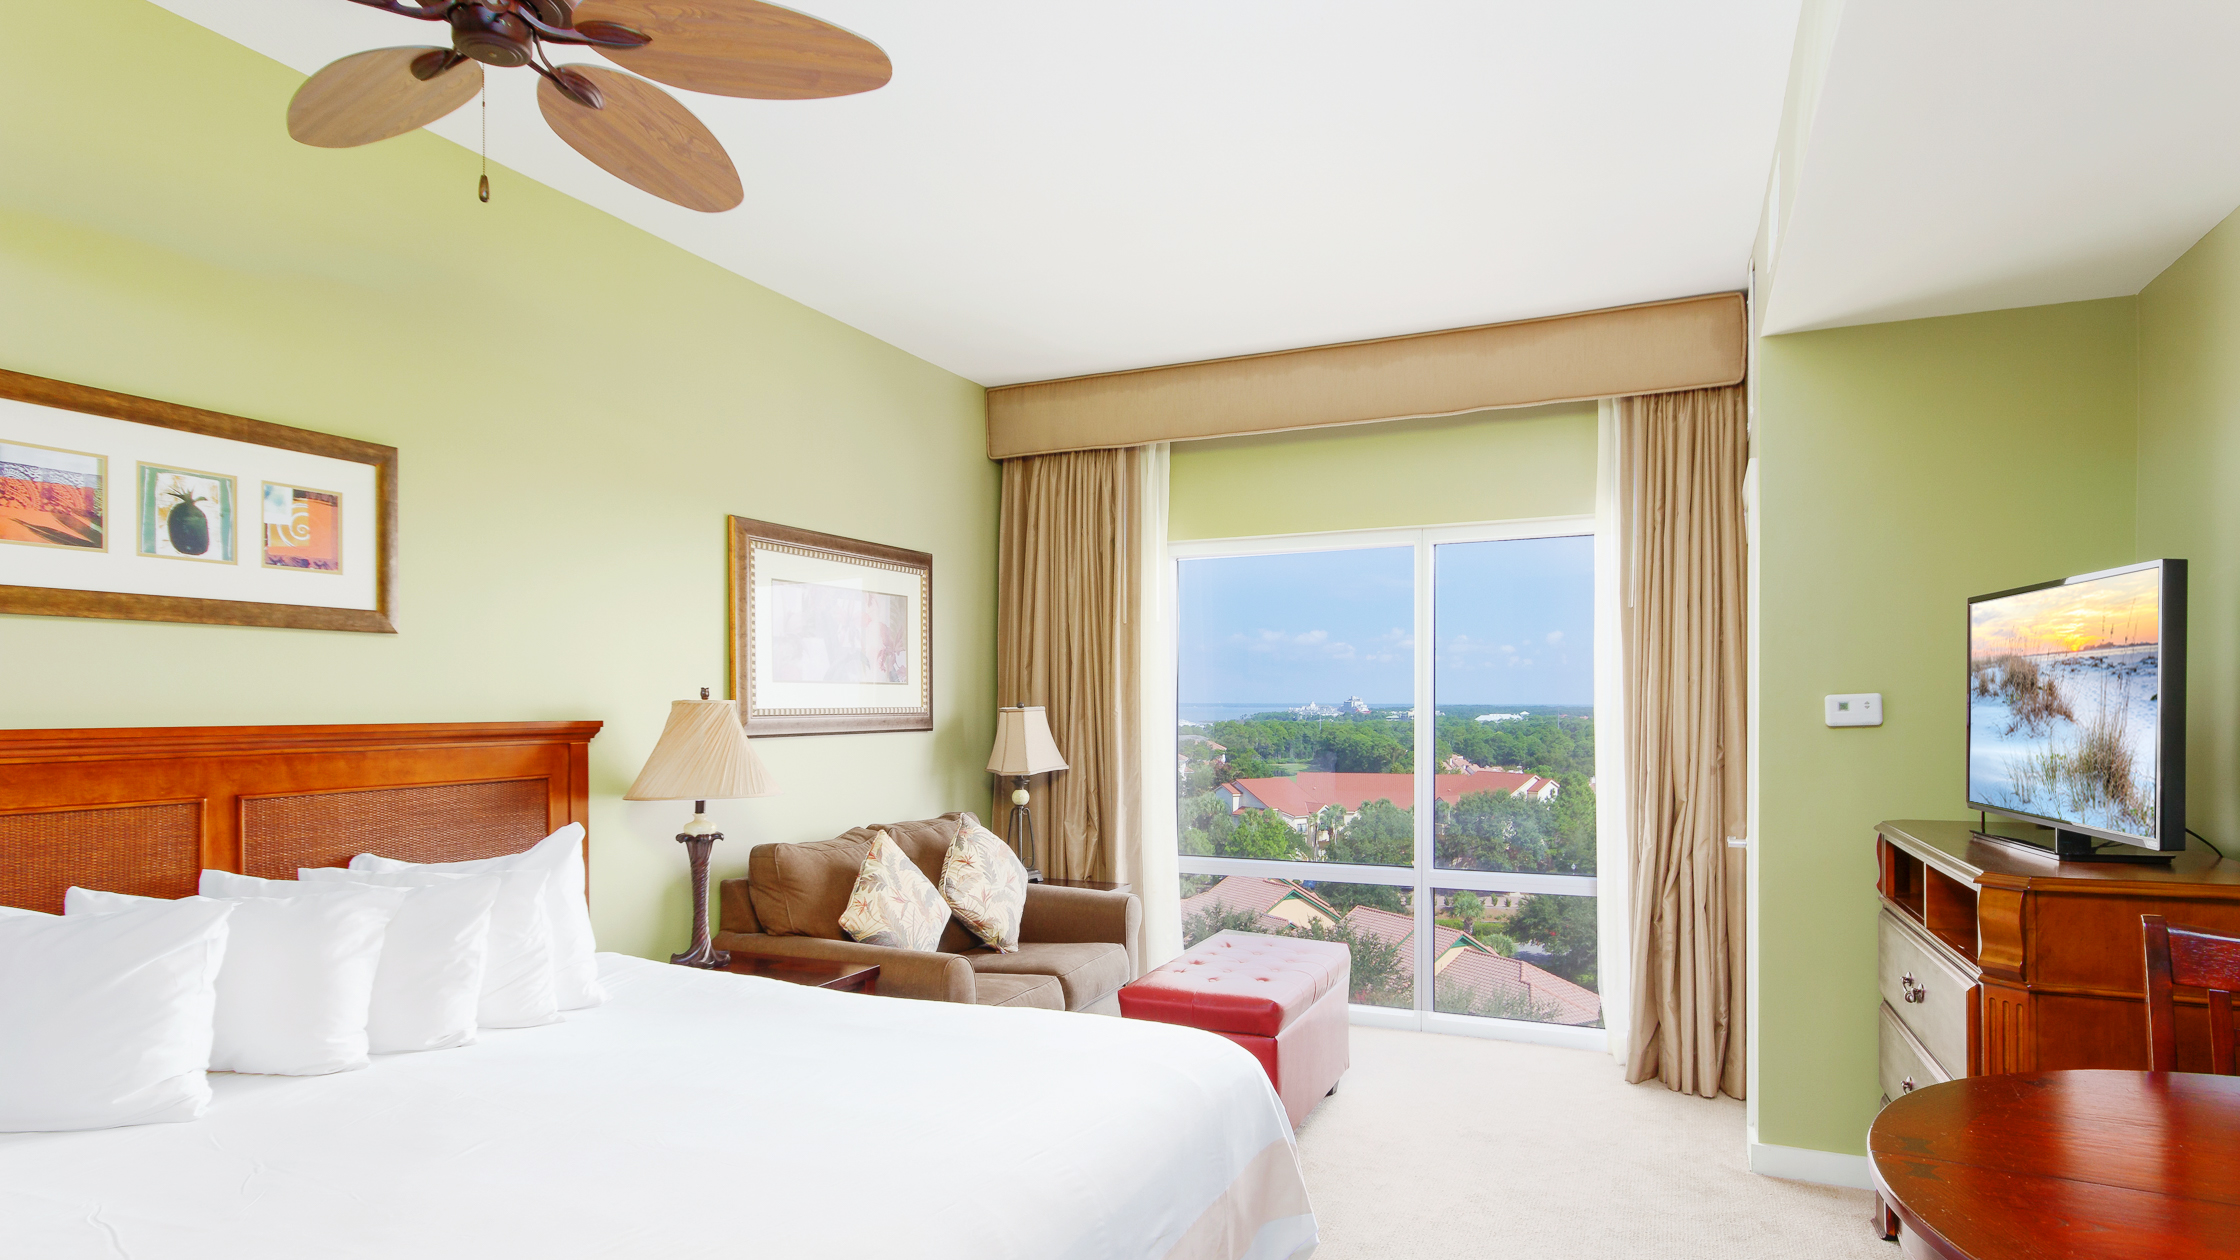 Miramar Beach FL Vacation Rental Welcome to your